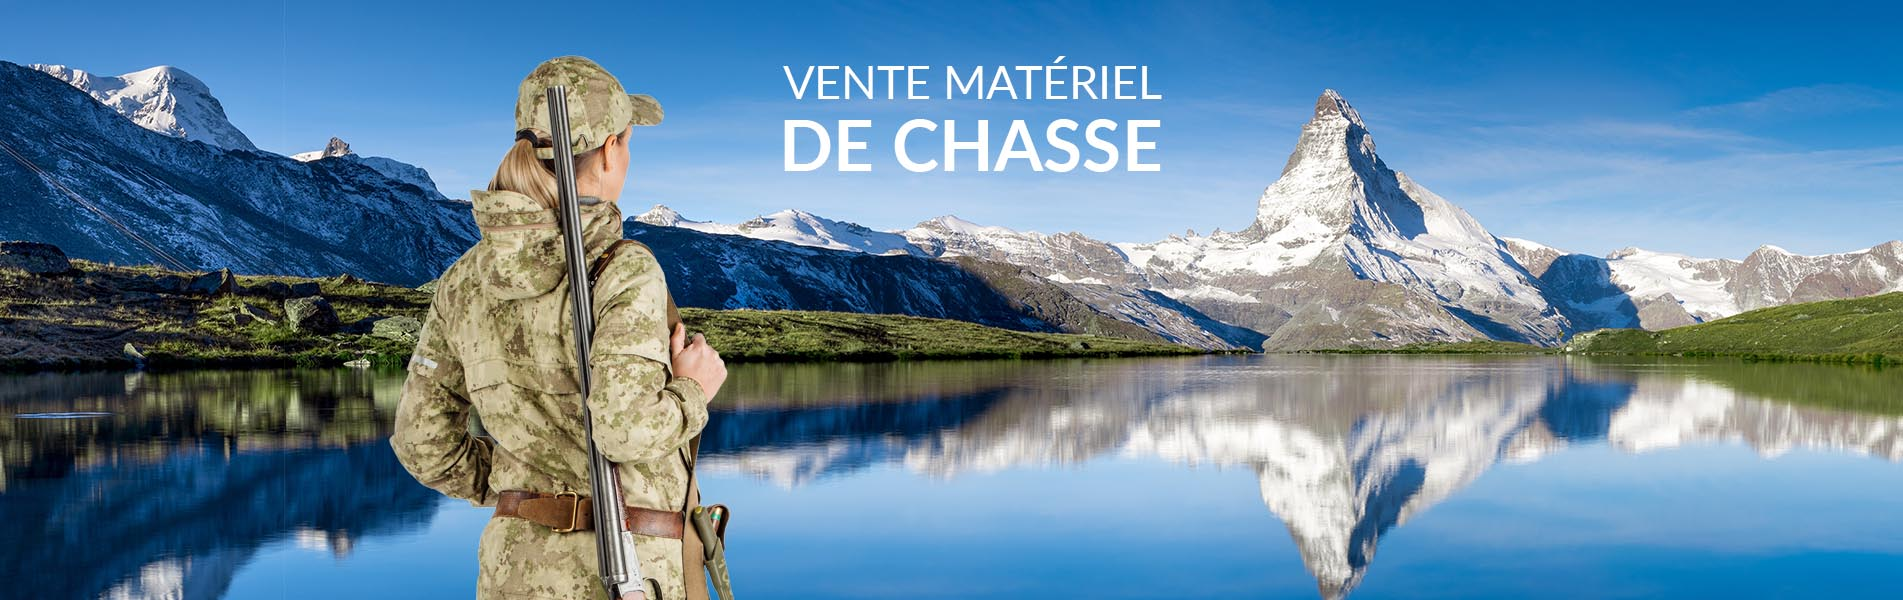 Montage-page-ecommerce-chasse-1